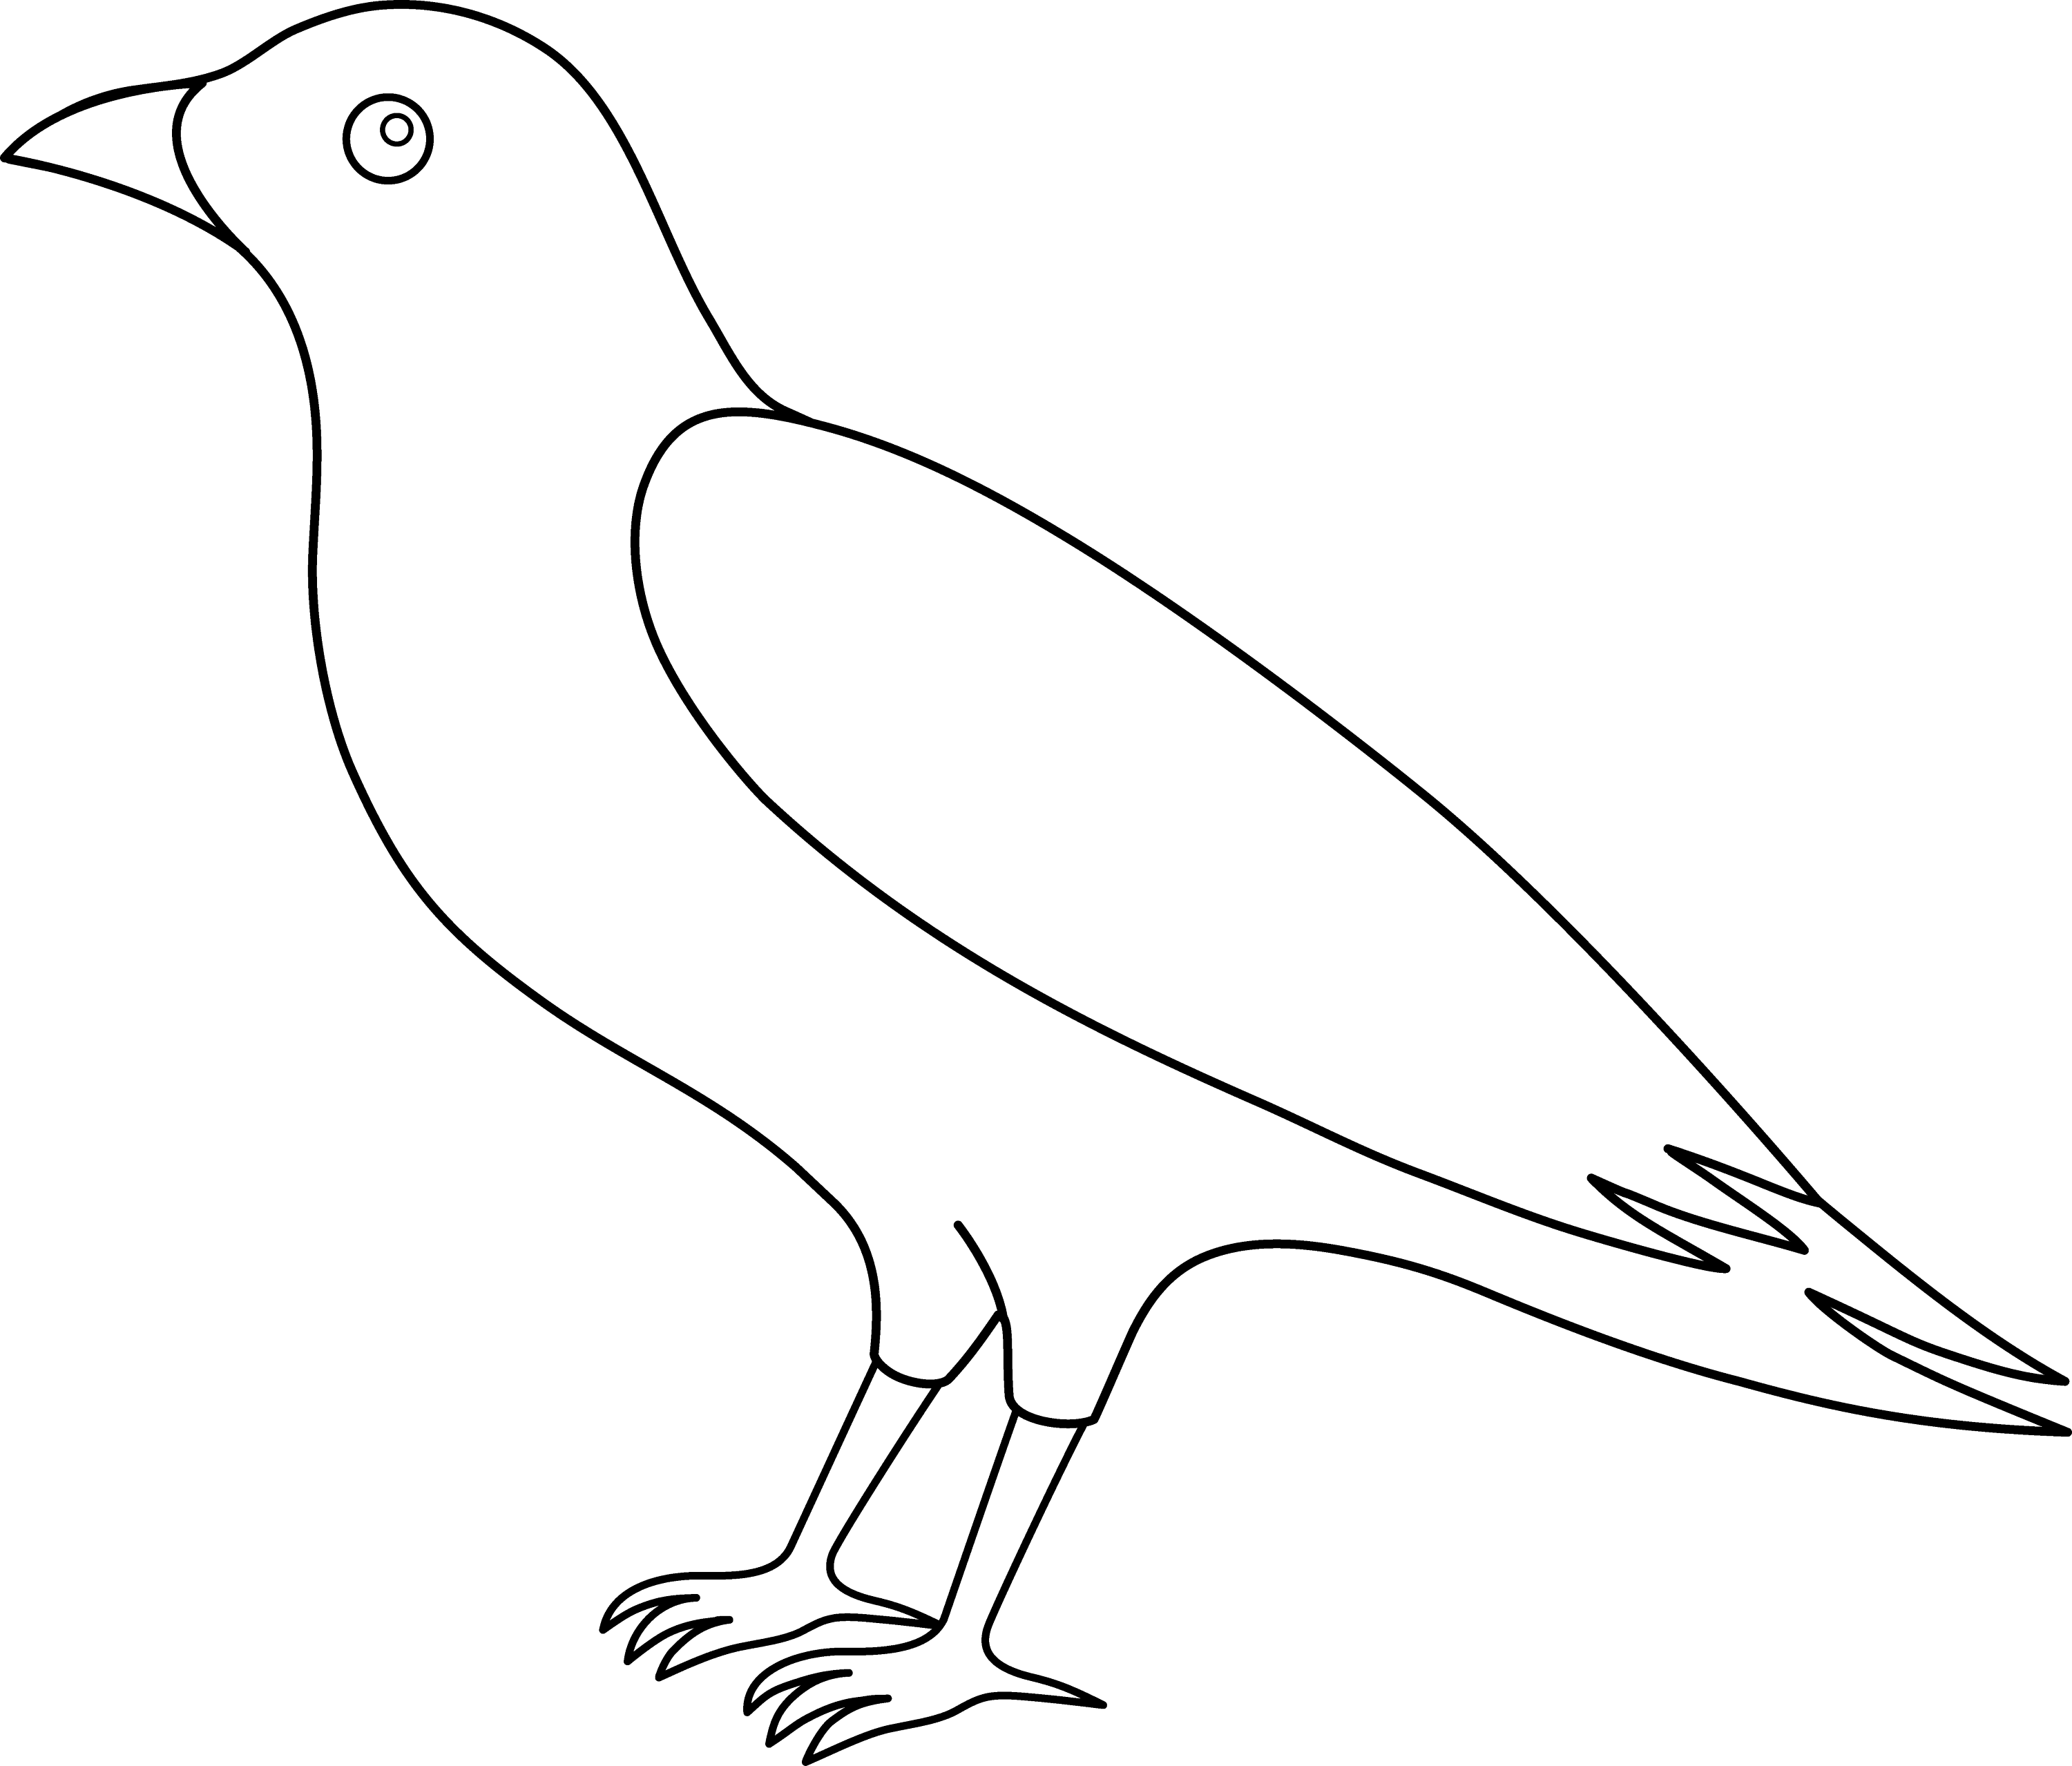 crow printable coloring pages crow coloring pages coloring pages to download and print crow coloring pages printable